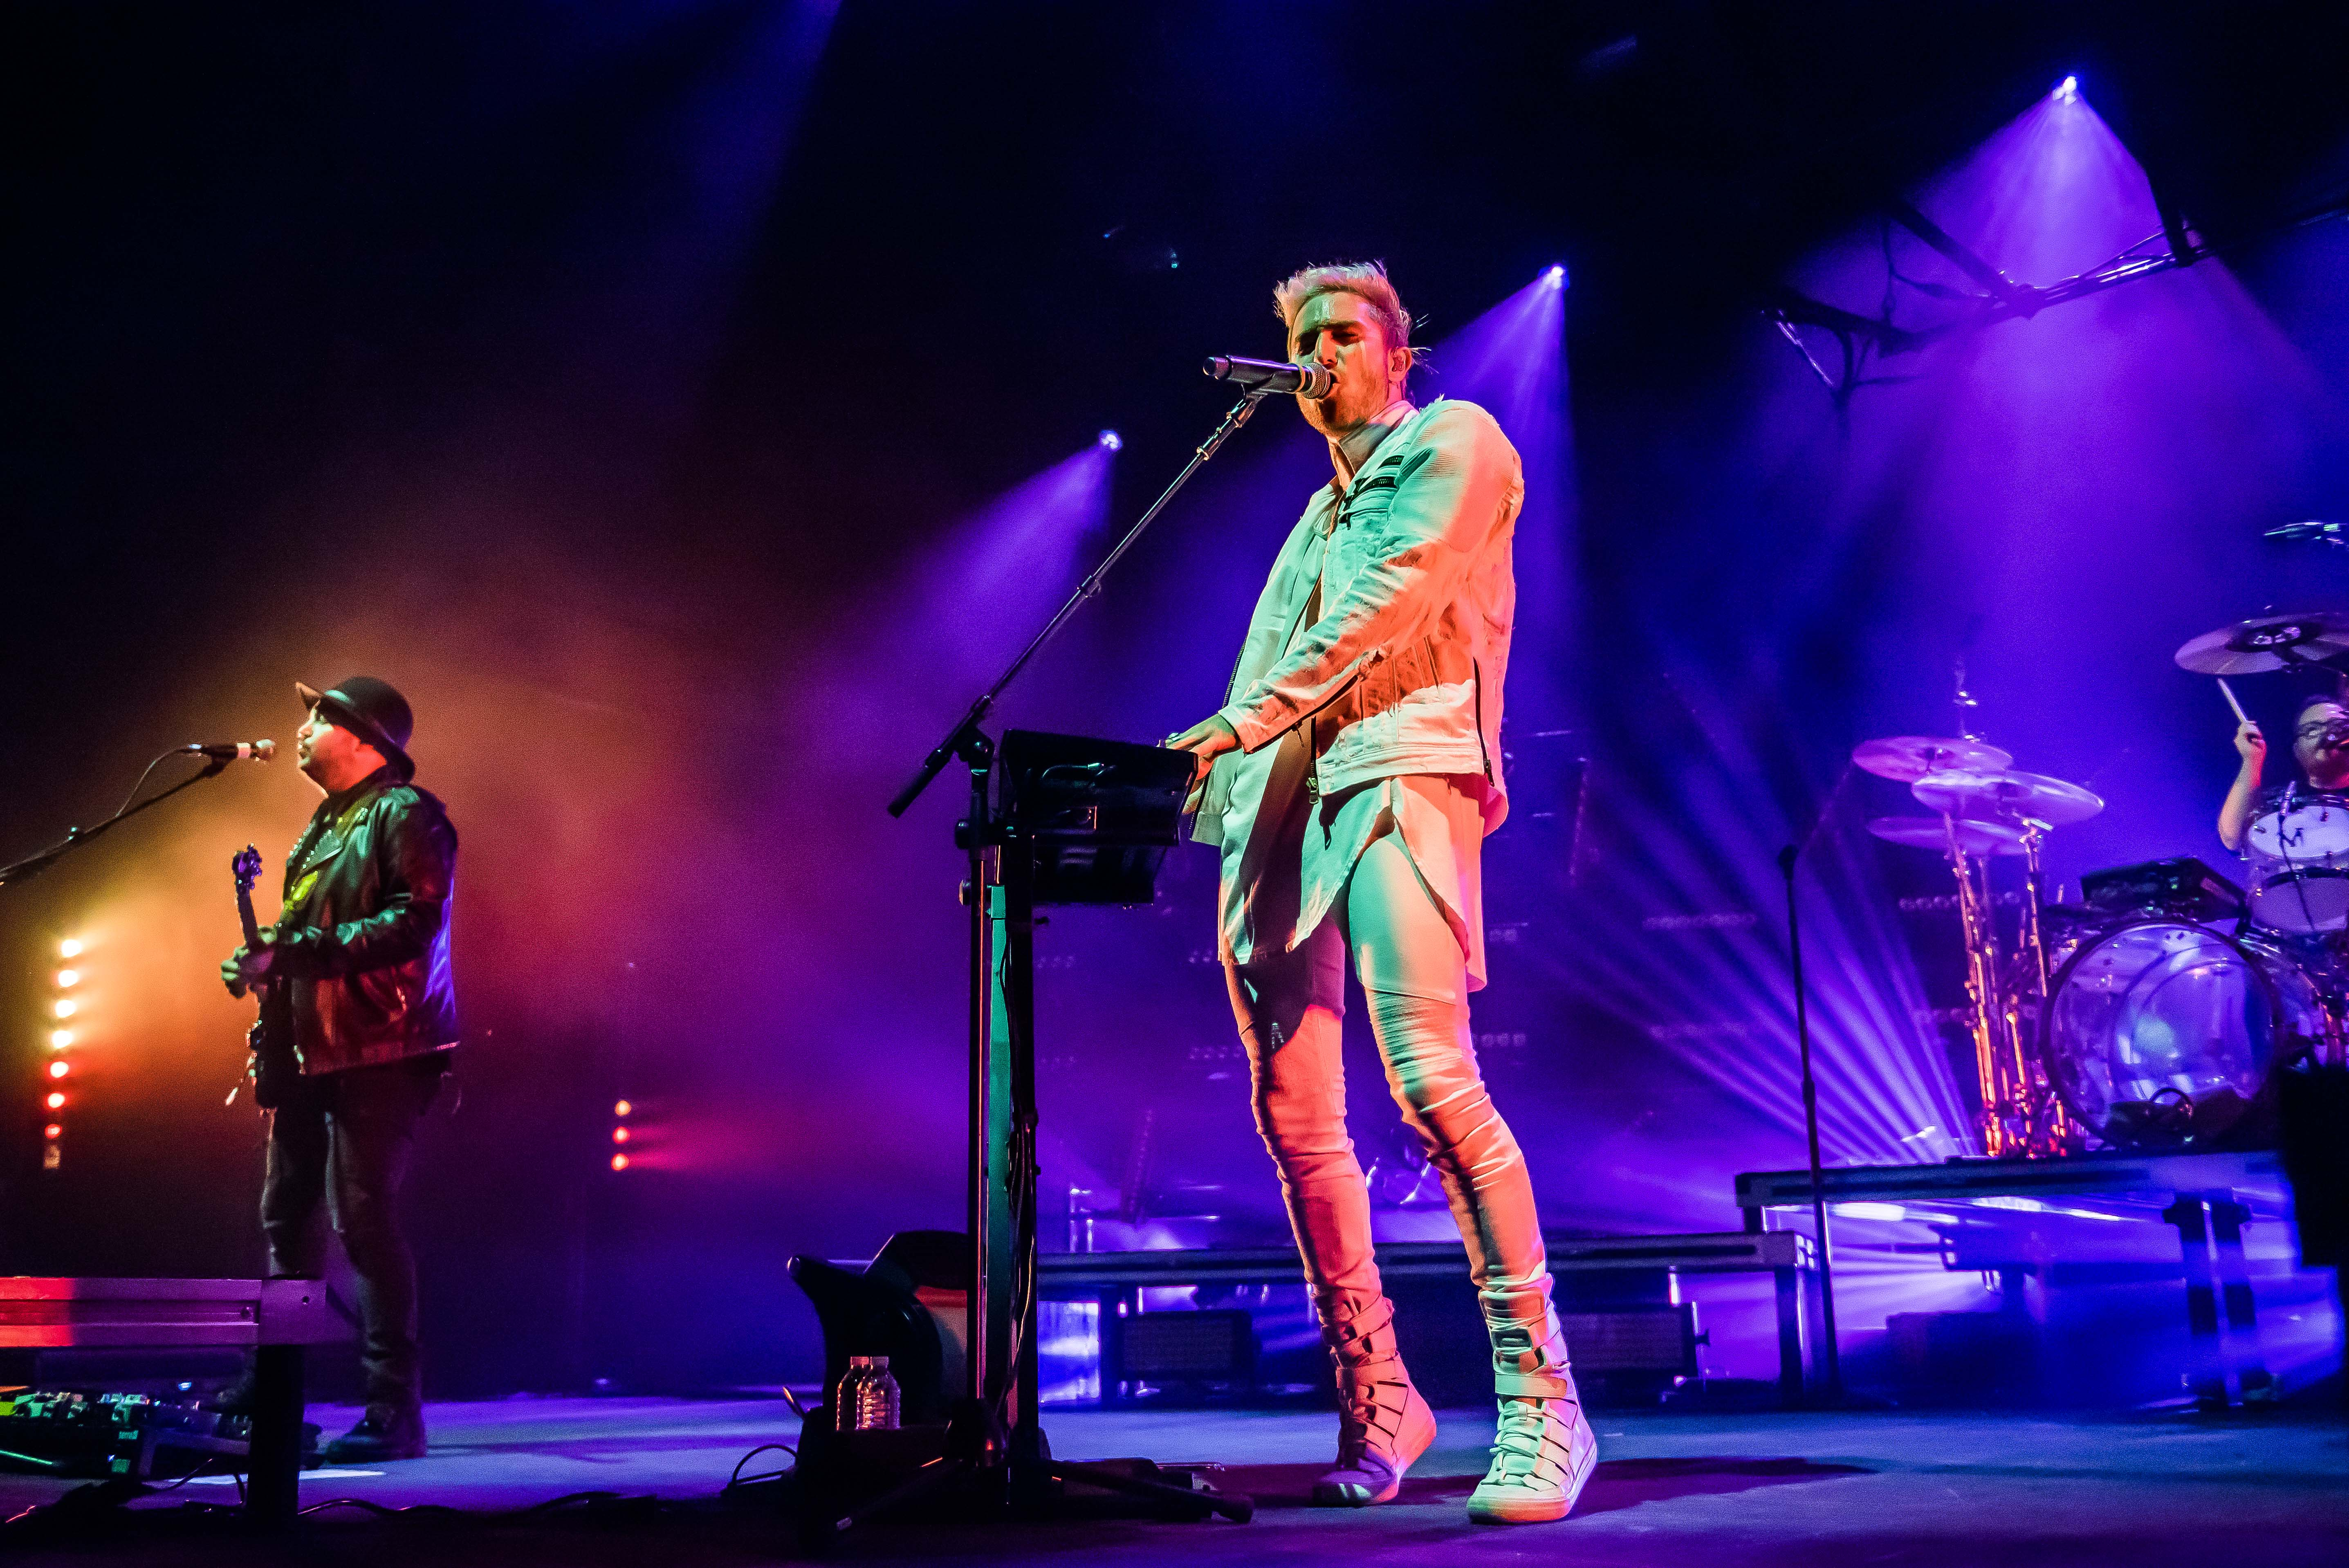 After a year and a half off the road, Cincinnati-based rock band WALK THE MOON kicked off their Press Restart Tour on Friday,  January 12 at The Anthem. The tour will hit 27 cities, and celebrates their third major label release, 2017's What If Nothing. Company of Thieves opened the show. (Image: Joy Asico)